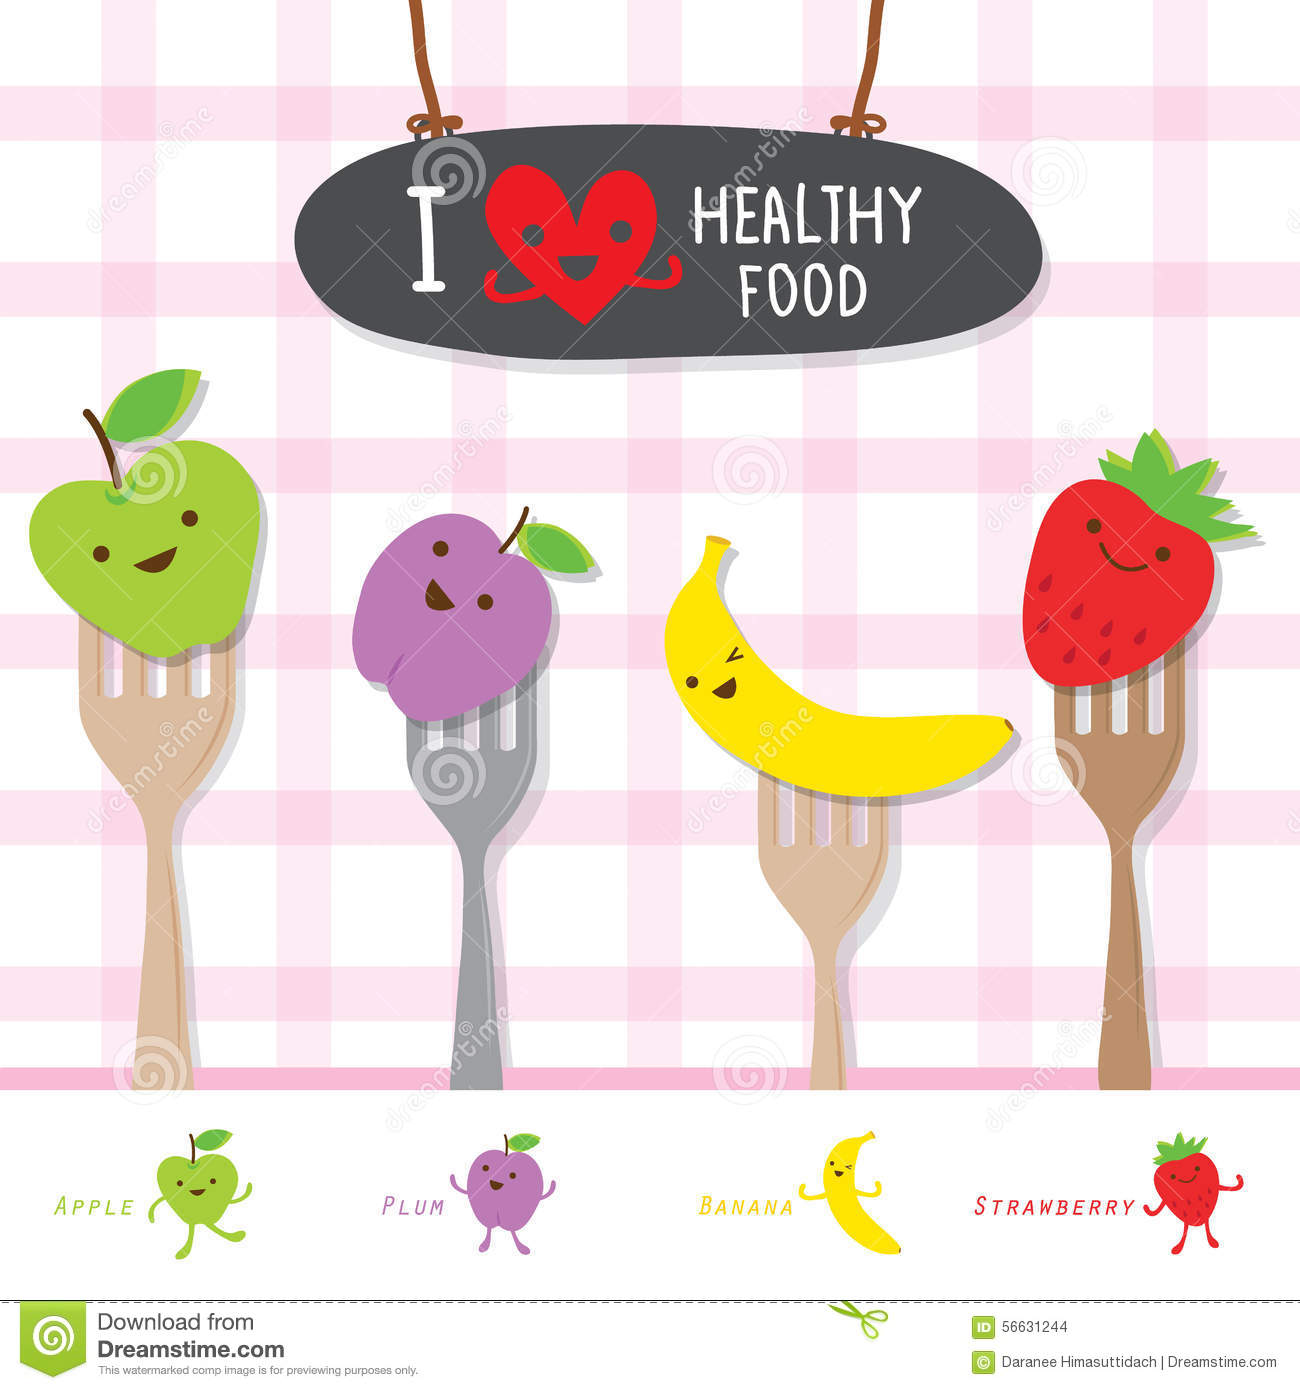 Healthy Food Fruitt Eat Useful Vitamin Cartoon Cute